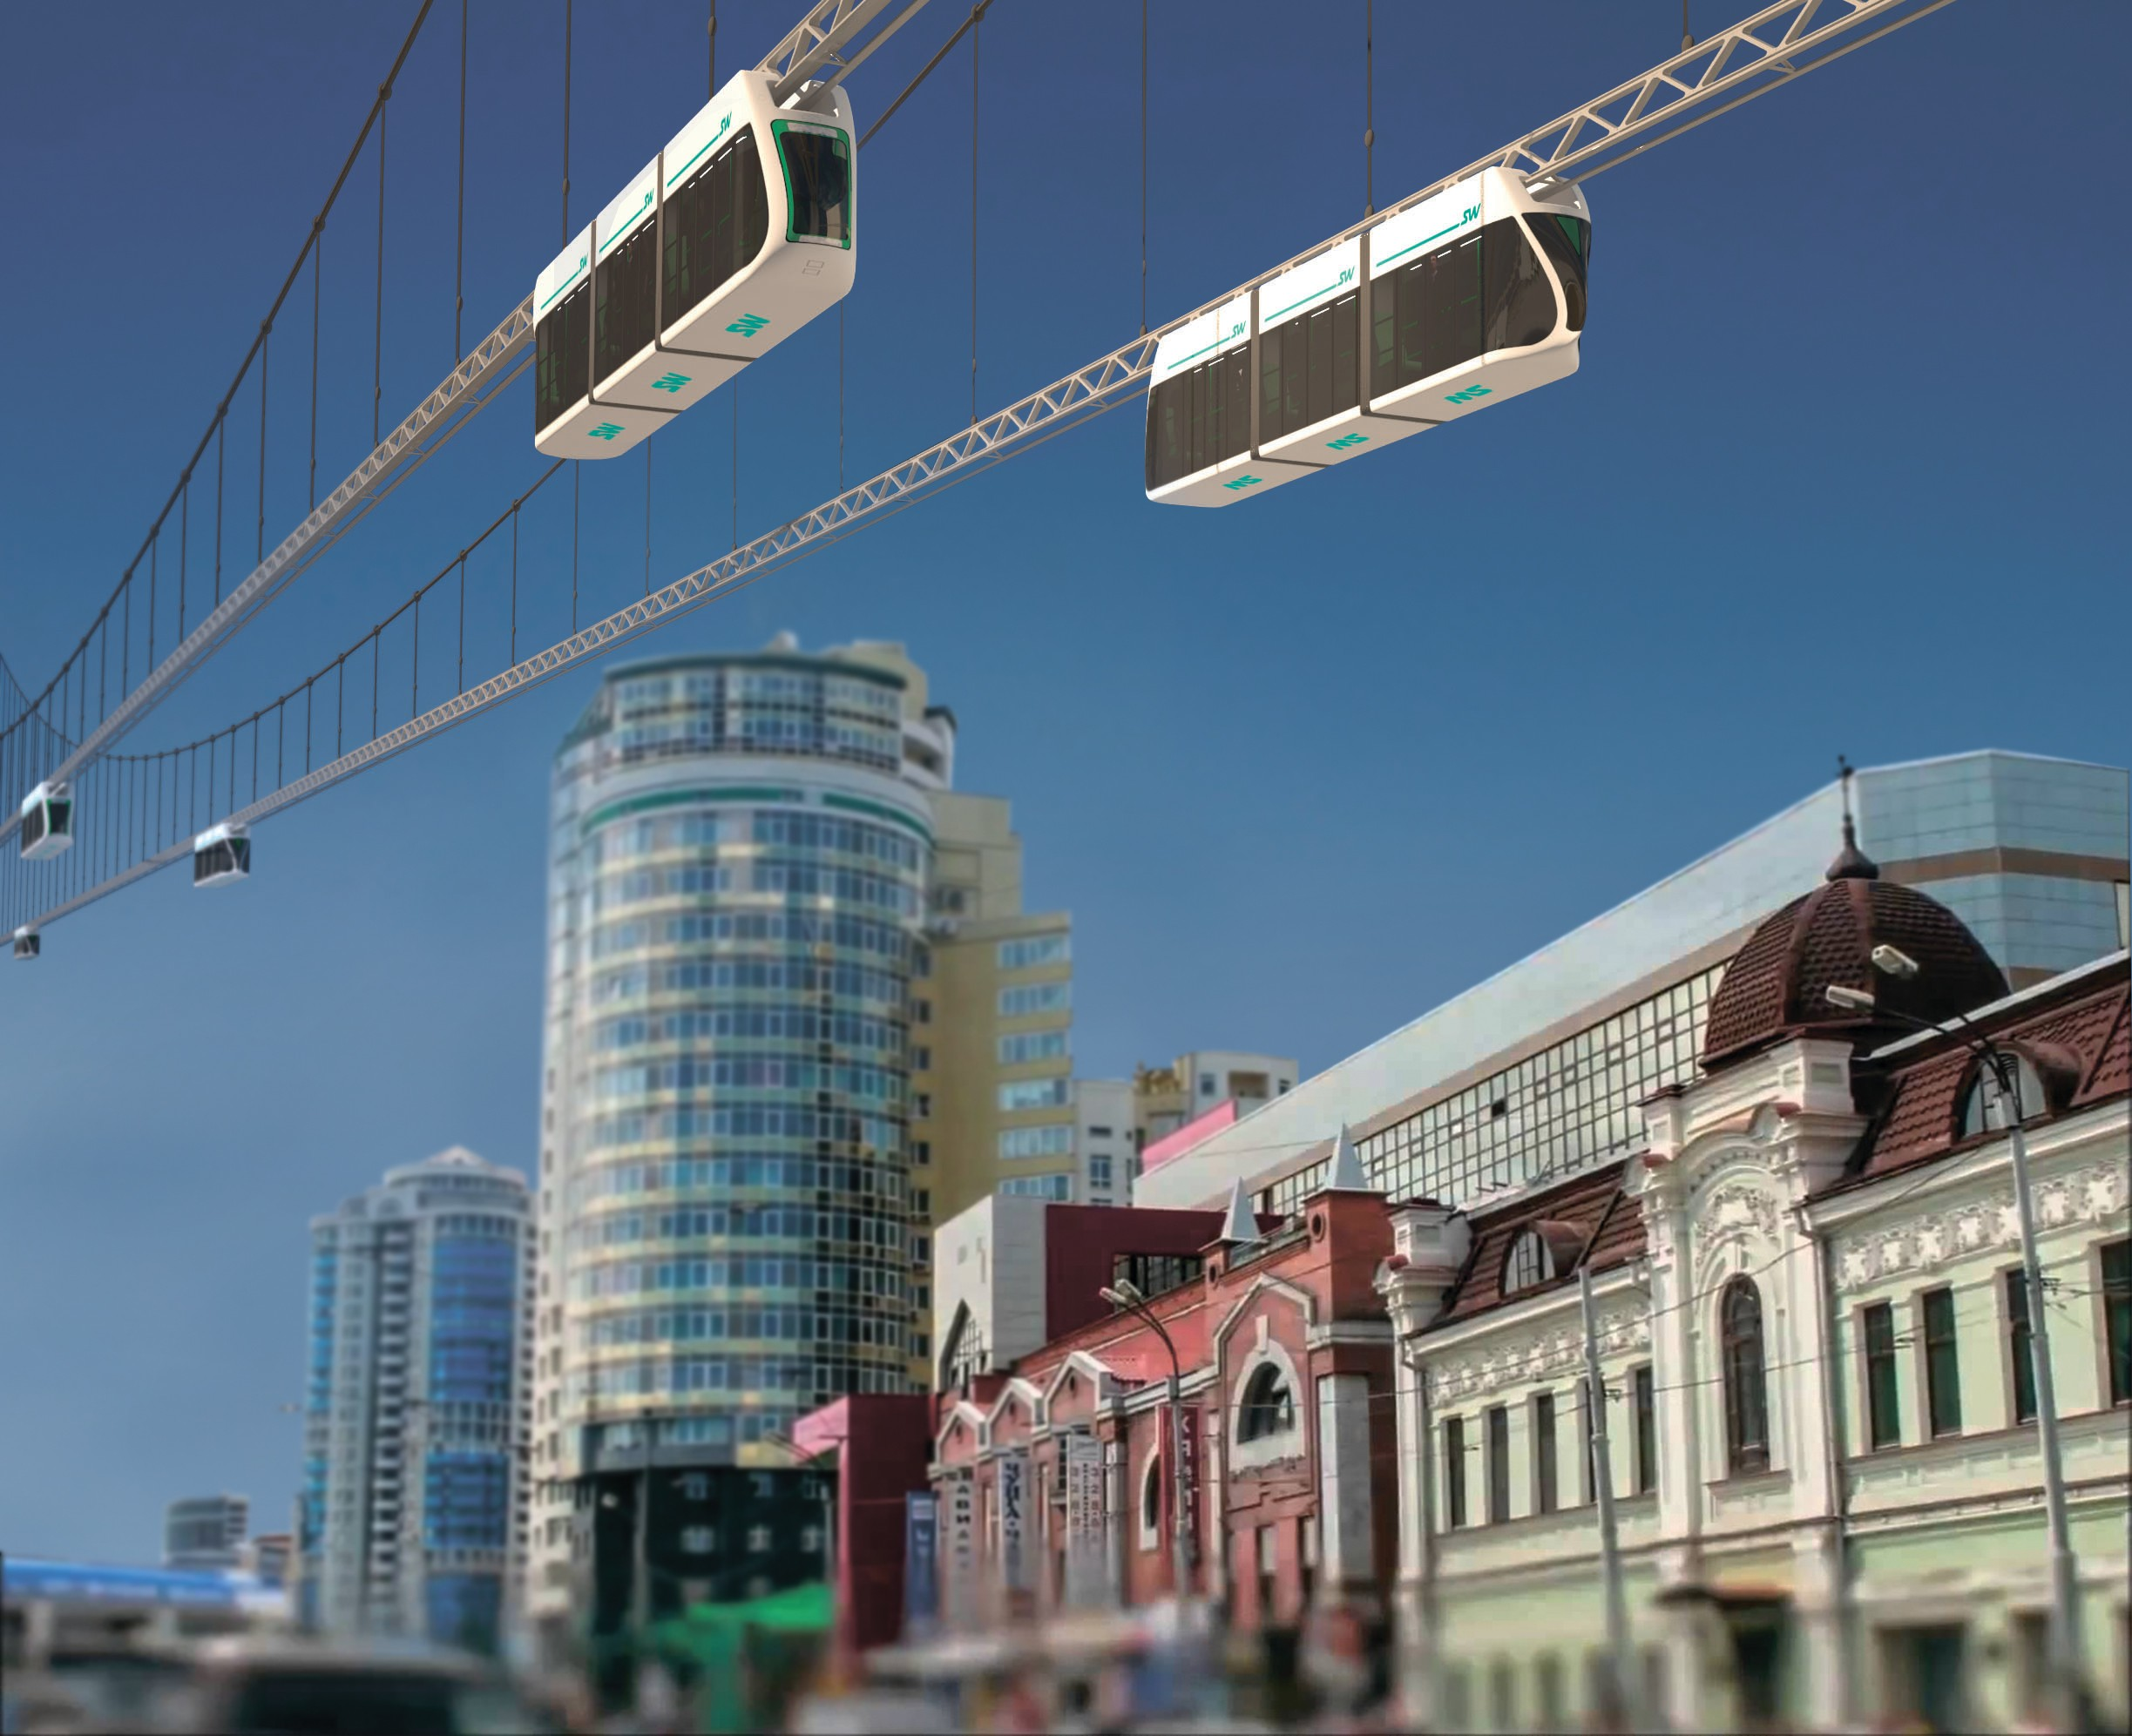 Paid Parking Lots in the City Center, Wi-Fi at Public Transport Stops and SkyWay: Yekaterinburg Is Waiting for Something New